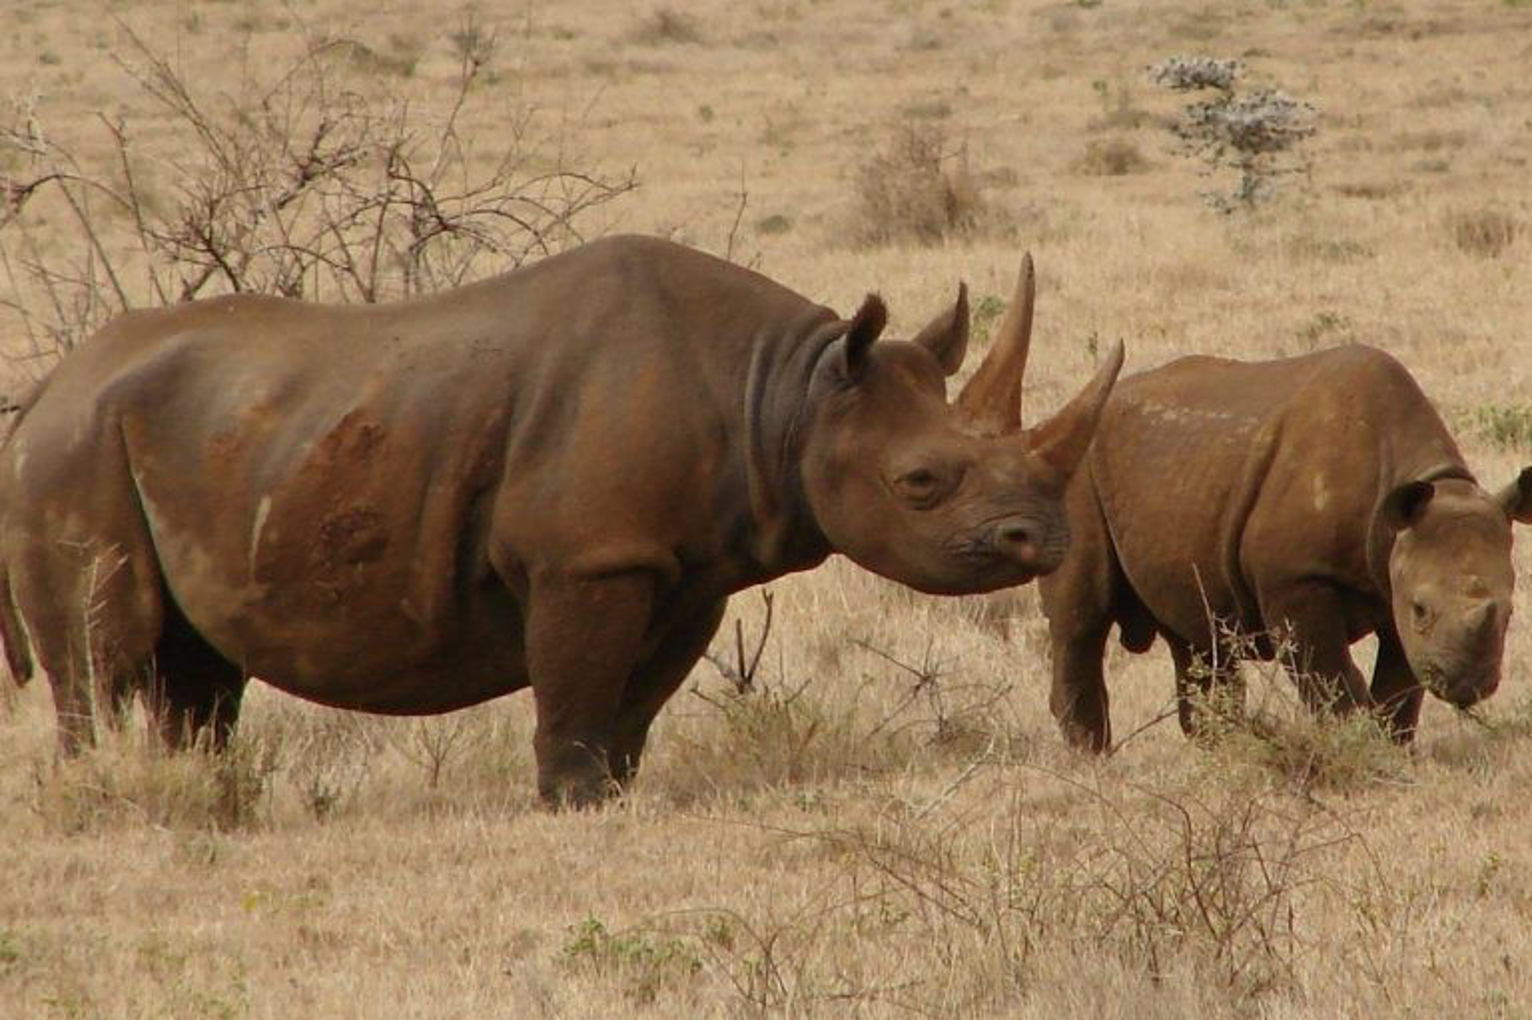 Poaching continues to be a major threat to black rhinos. Photo by Harald Zimmer, Wikimedia Commons, CC BY-SA 3.0.